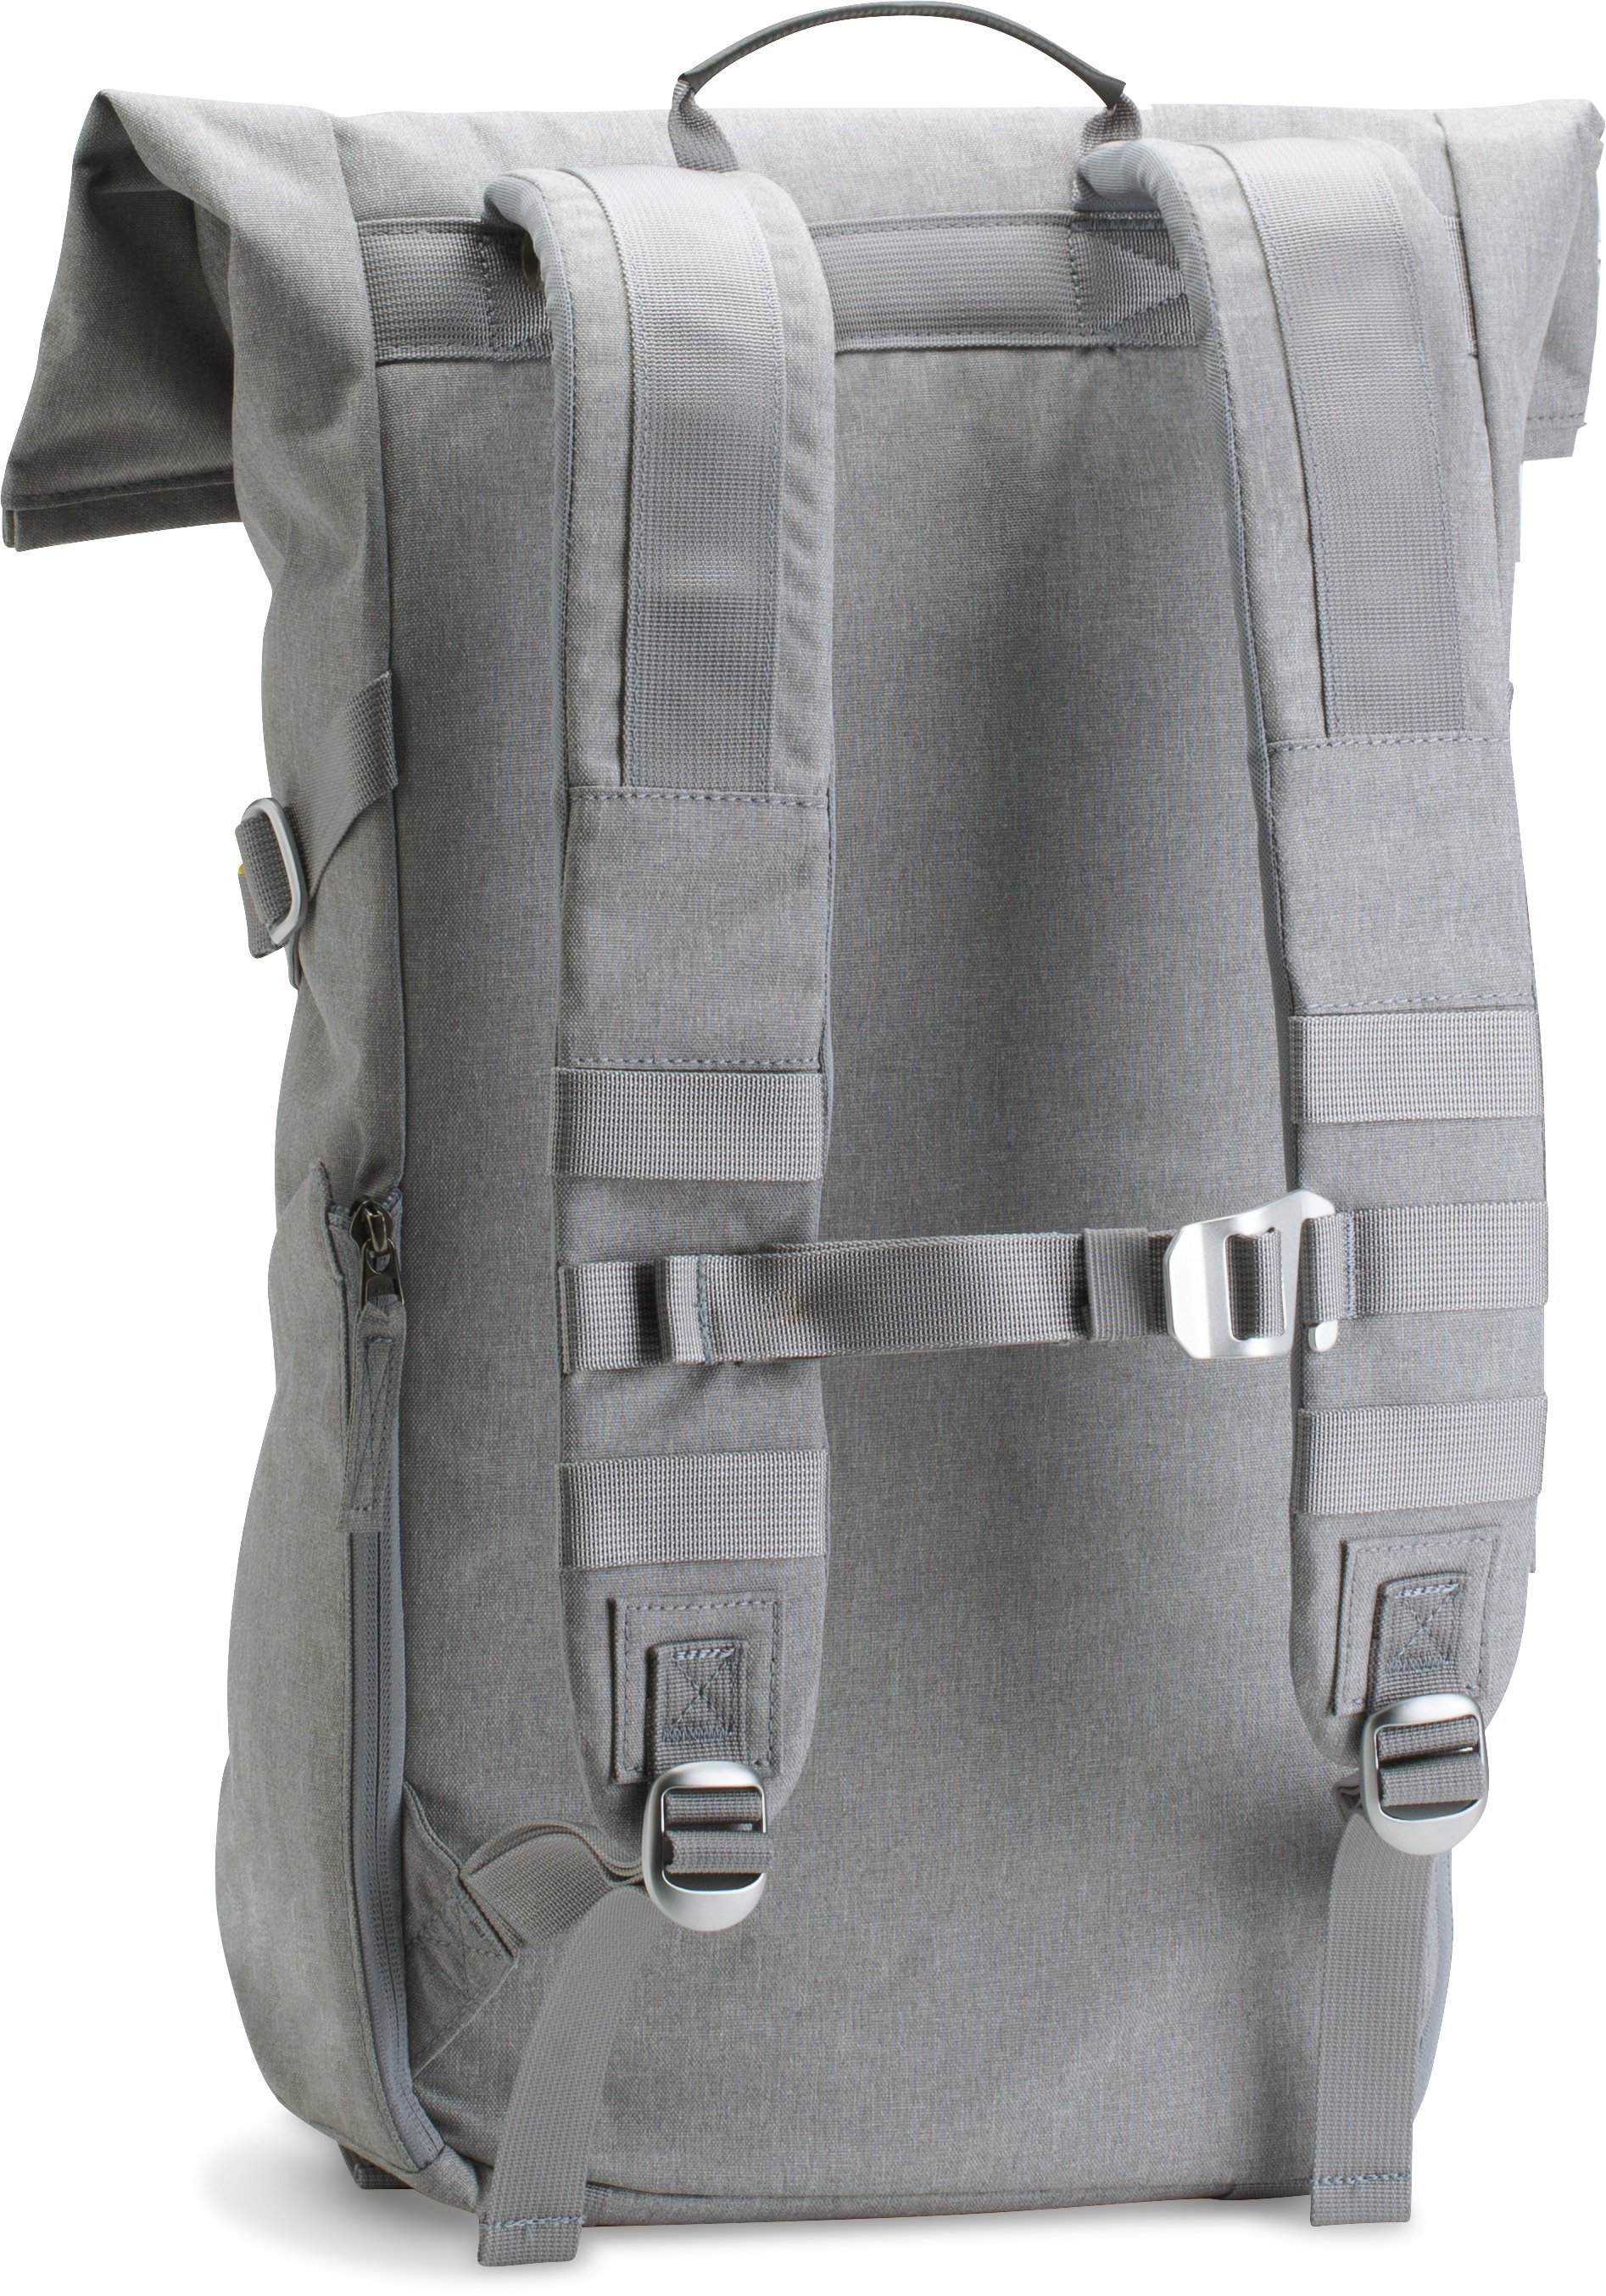 SC30 Signature Rolltop Backpack, GRAY AREA MEDIUM HEATHER,